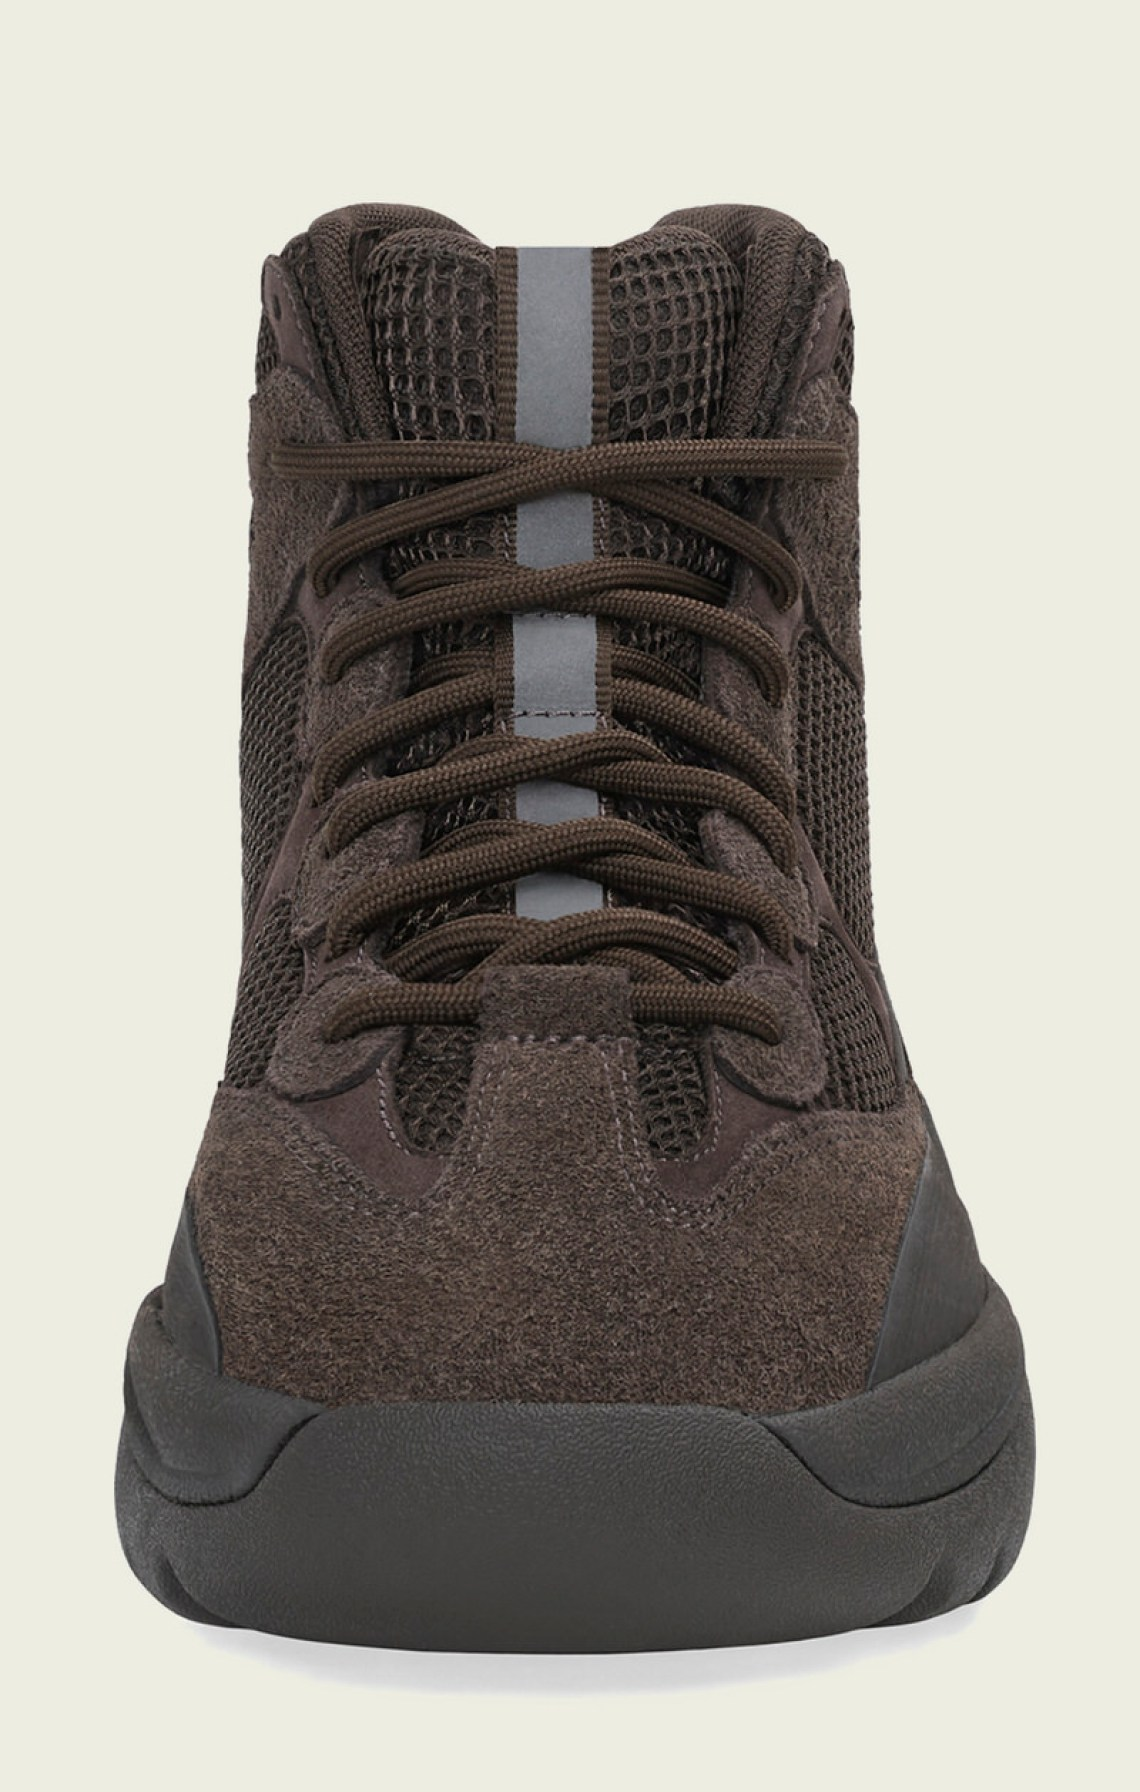 75102aaa71a The  200 adidas Yeezy DSRT Boot is Set to Drop in Another Colorway ...